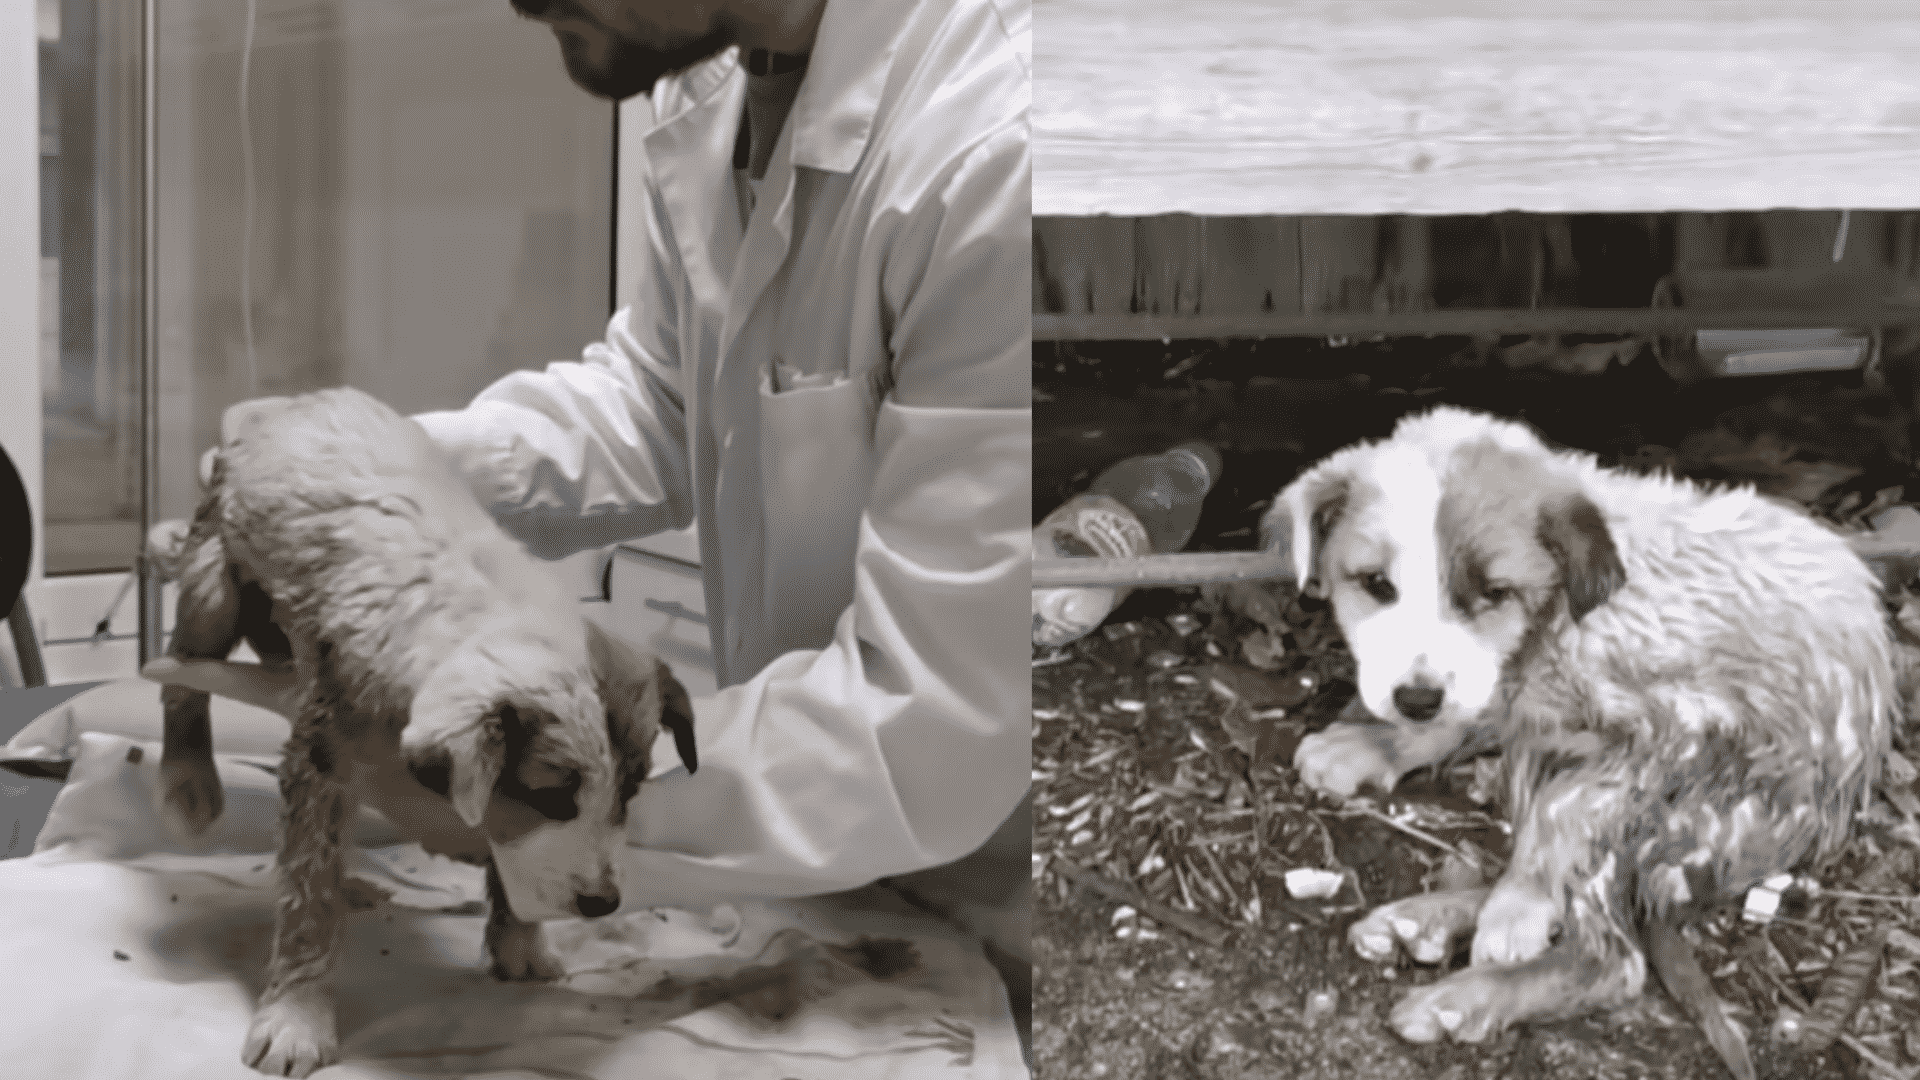 Everyone Saw This Puppy's Health Deteriorate Every Day, But No one Helped! Luckily, Her Savior Showed Up!